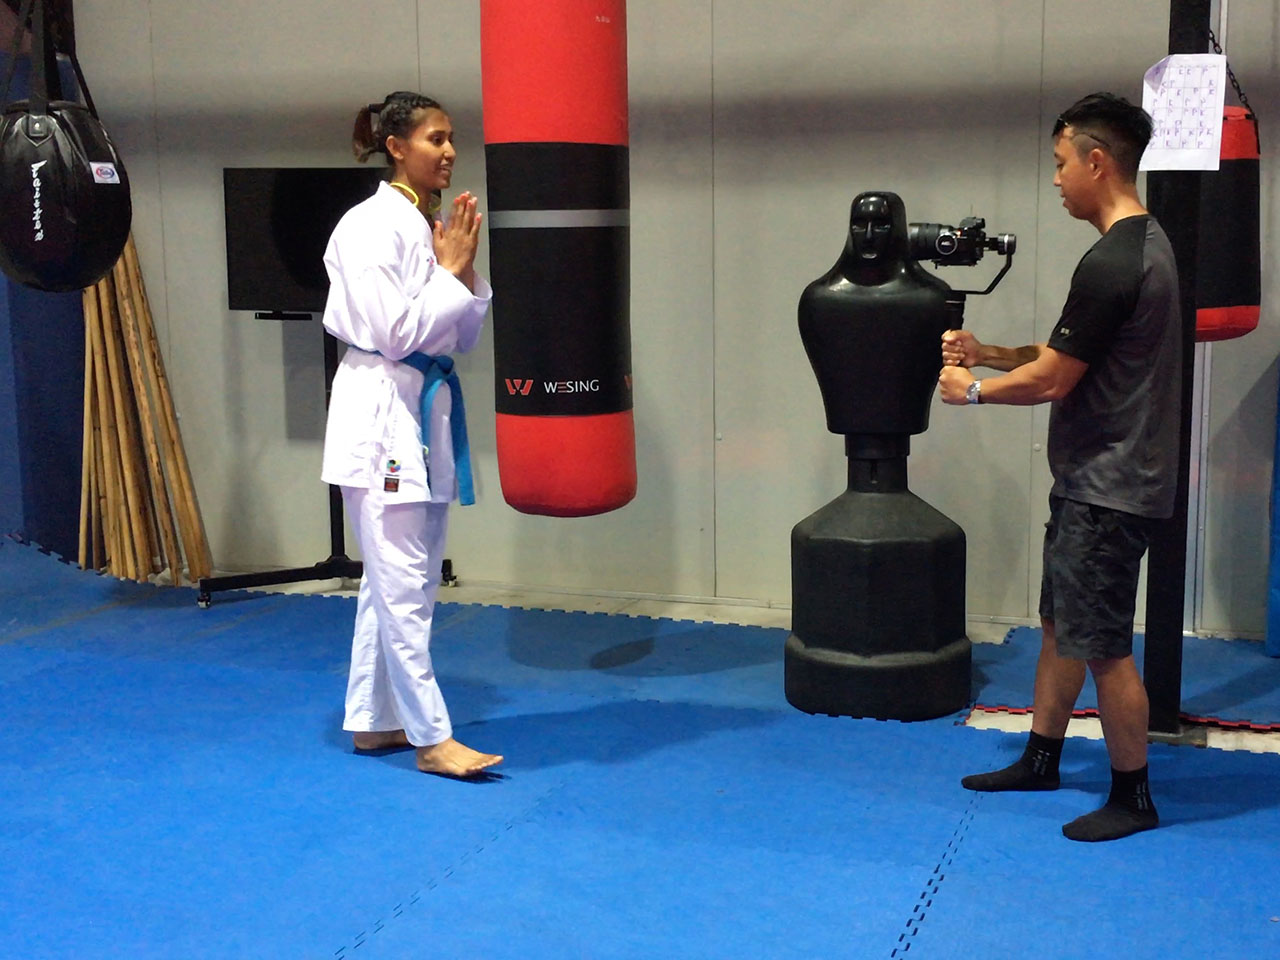 Calm and composed, this warrior princess, Syakilla Salni is a world ranking karate exponent